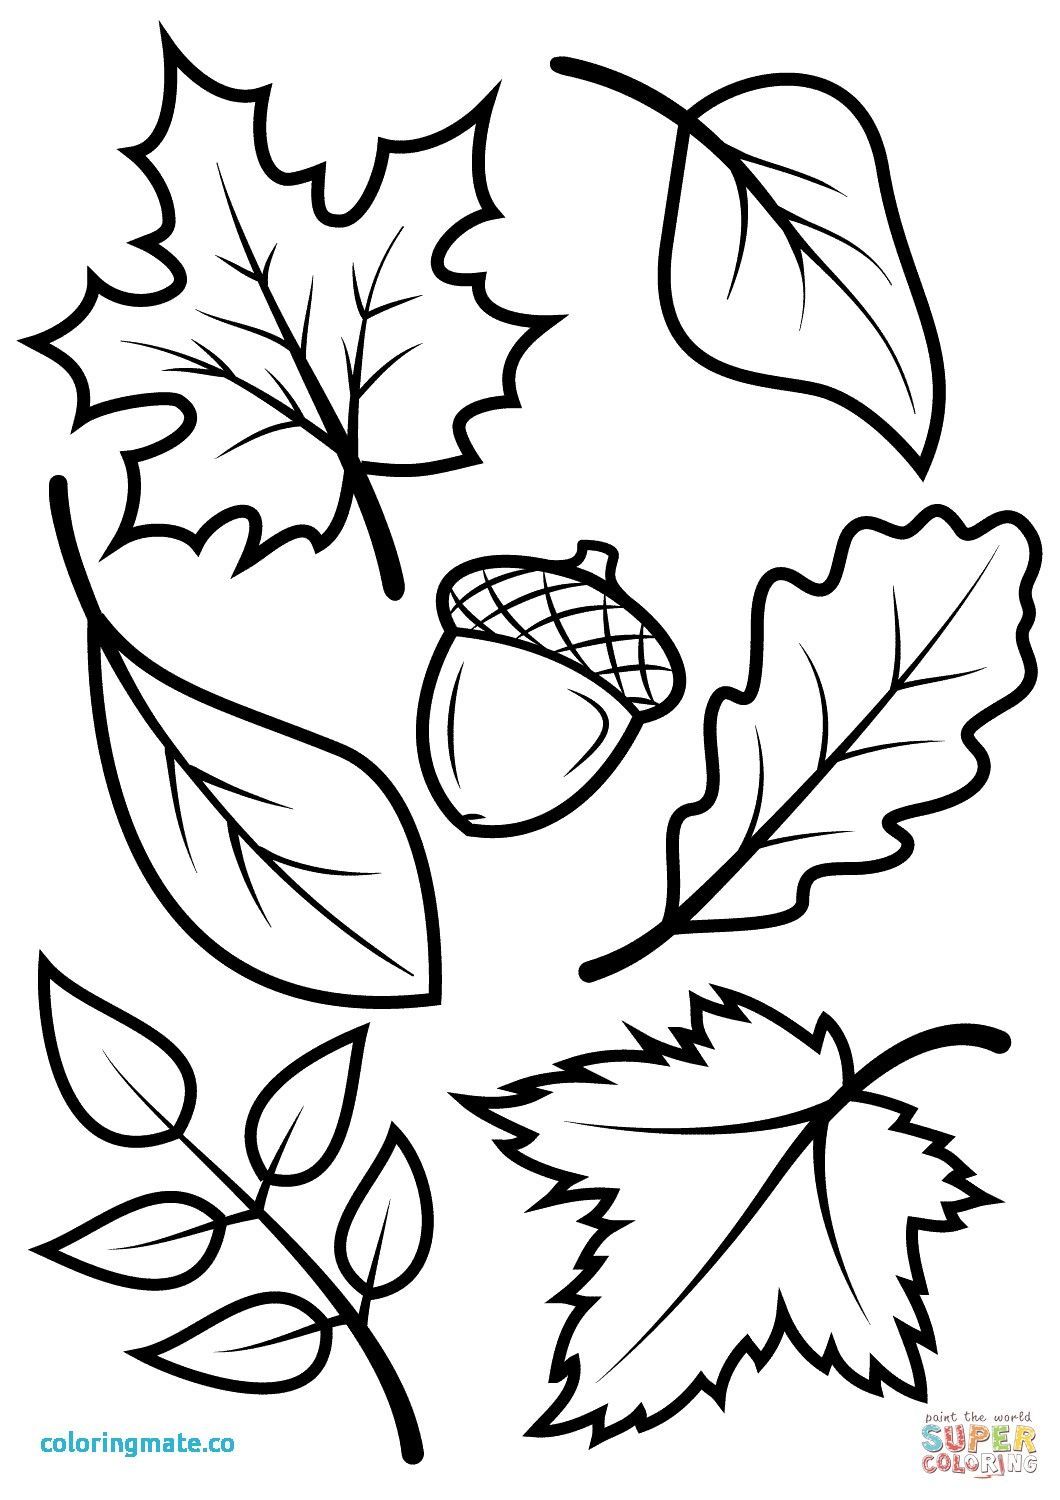 26+ Printable leaves coloring pages info